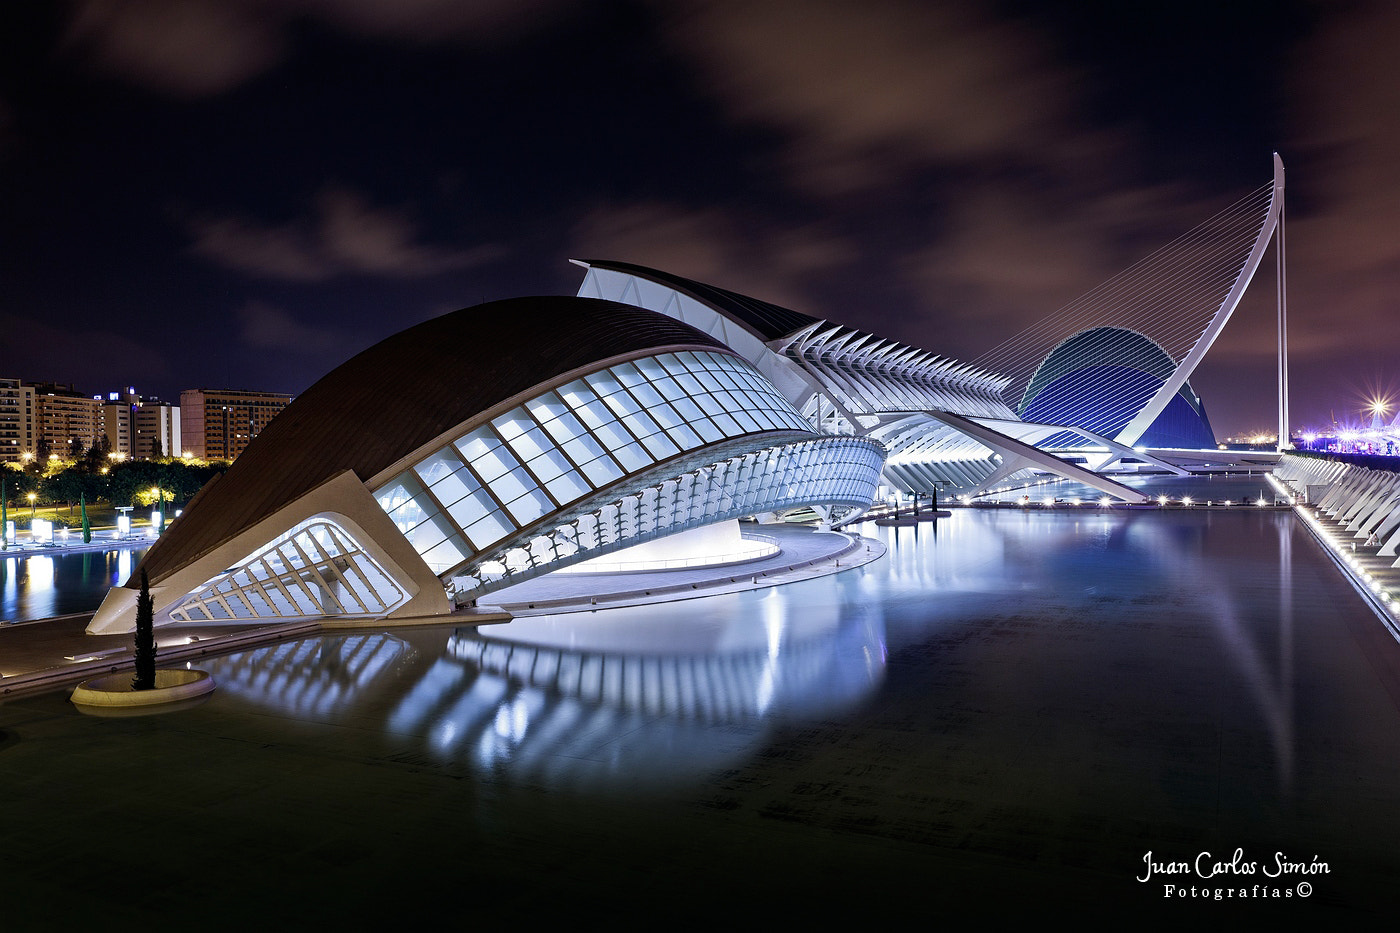 Photograph Ciudad de las Artes y las ciencias de Valencia de noche (City of Arts and Sciences in Valencia by ni by Juan Carlos Simón on 500px